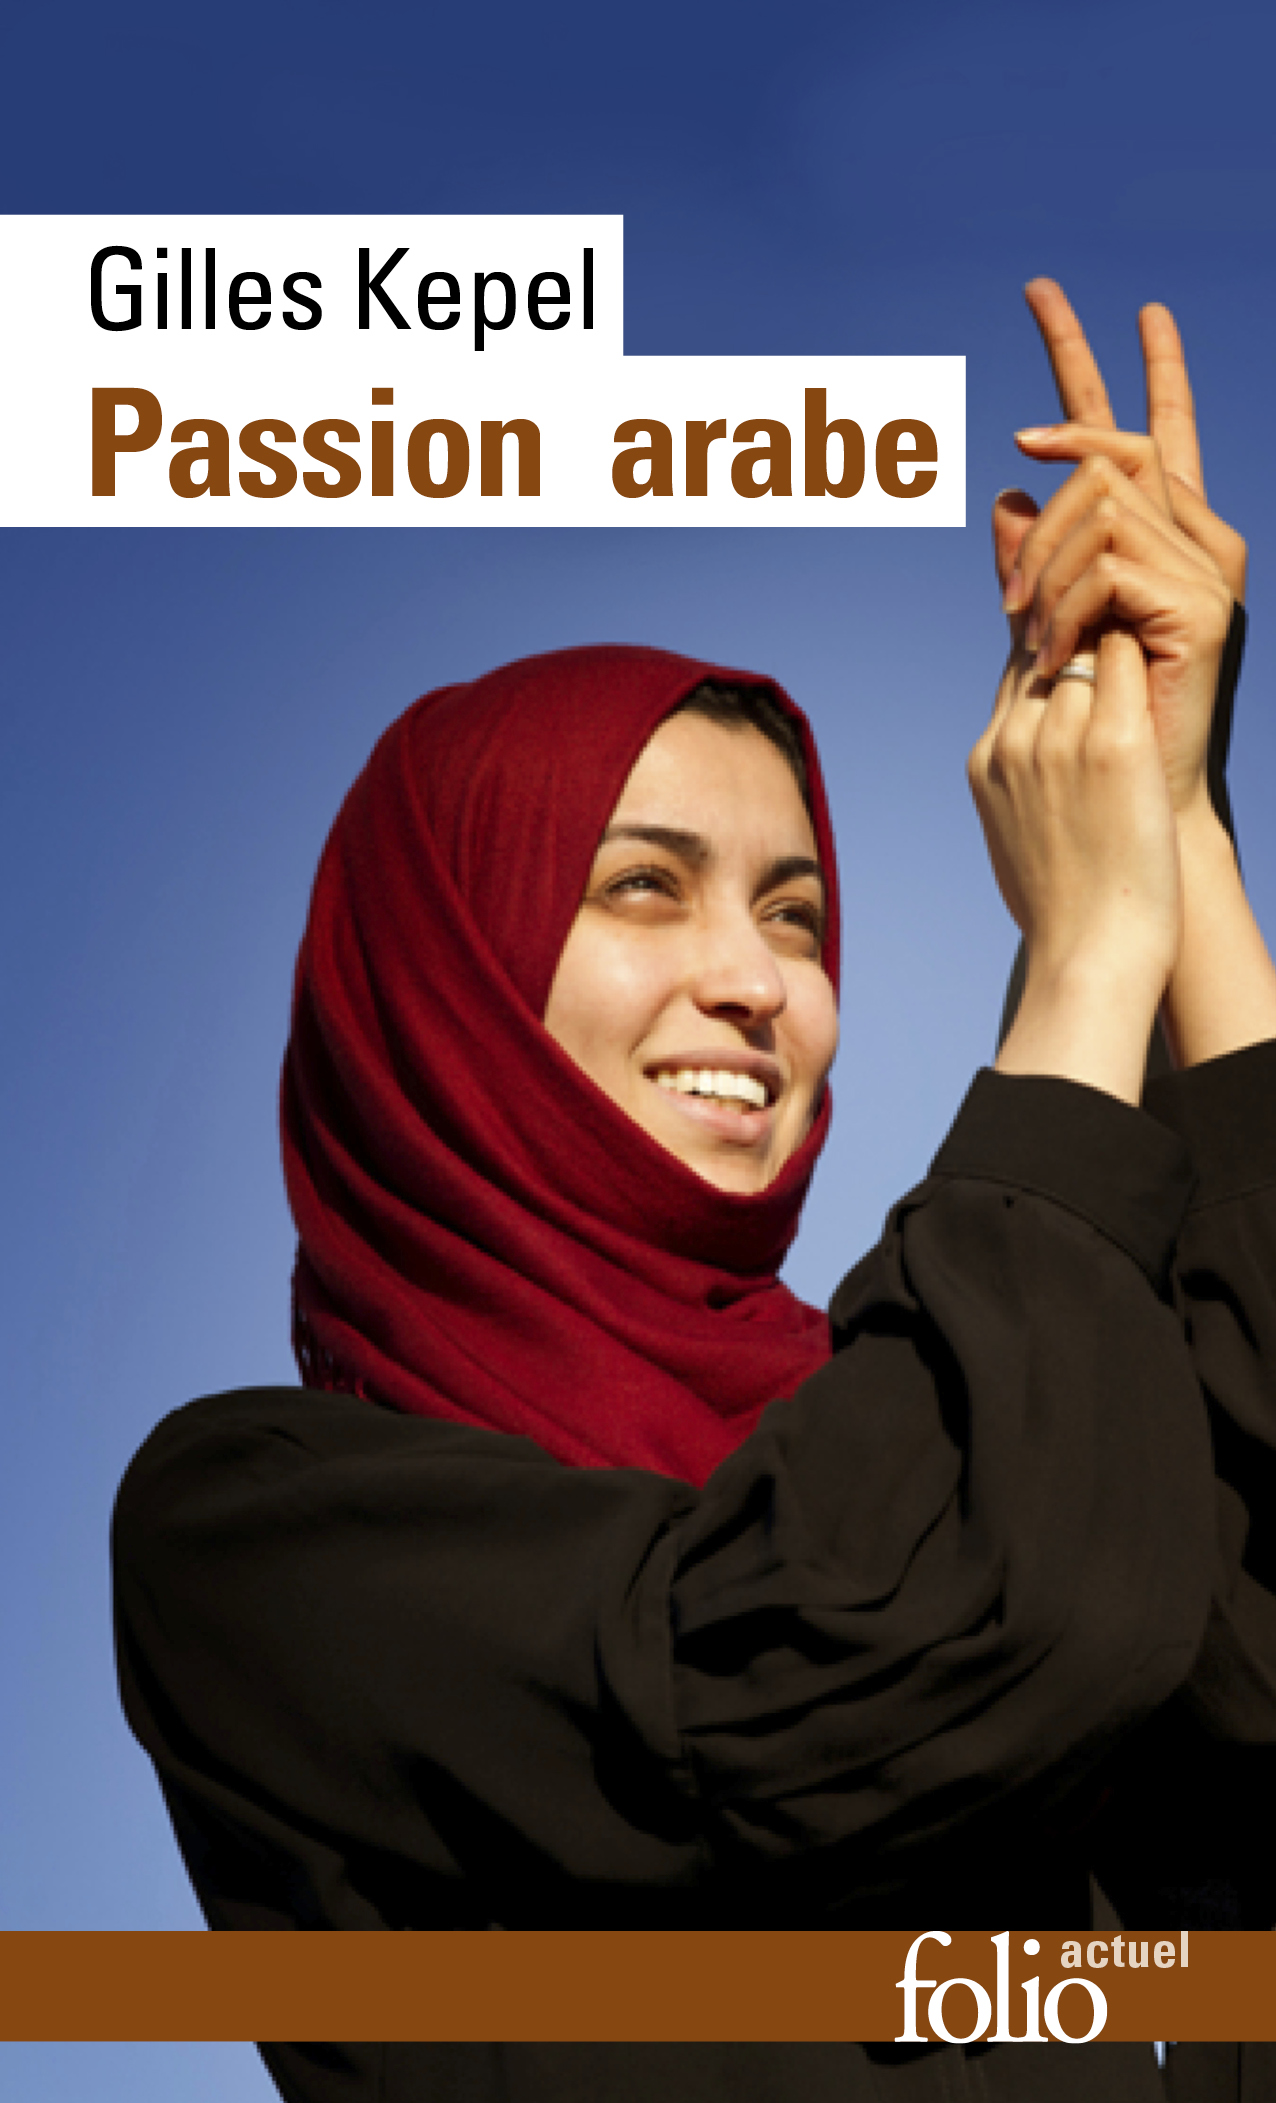 Passion arabe. Journal, 2011-2013 / Passion en Kabylie / Paysage avant la bataille